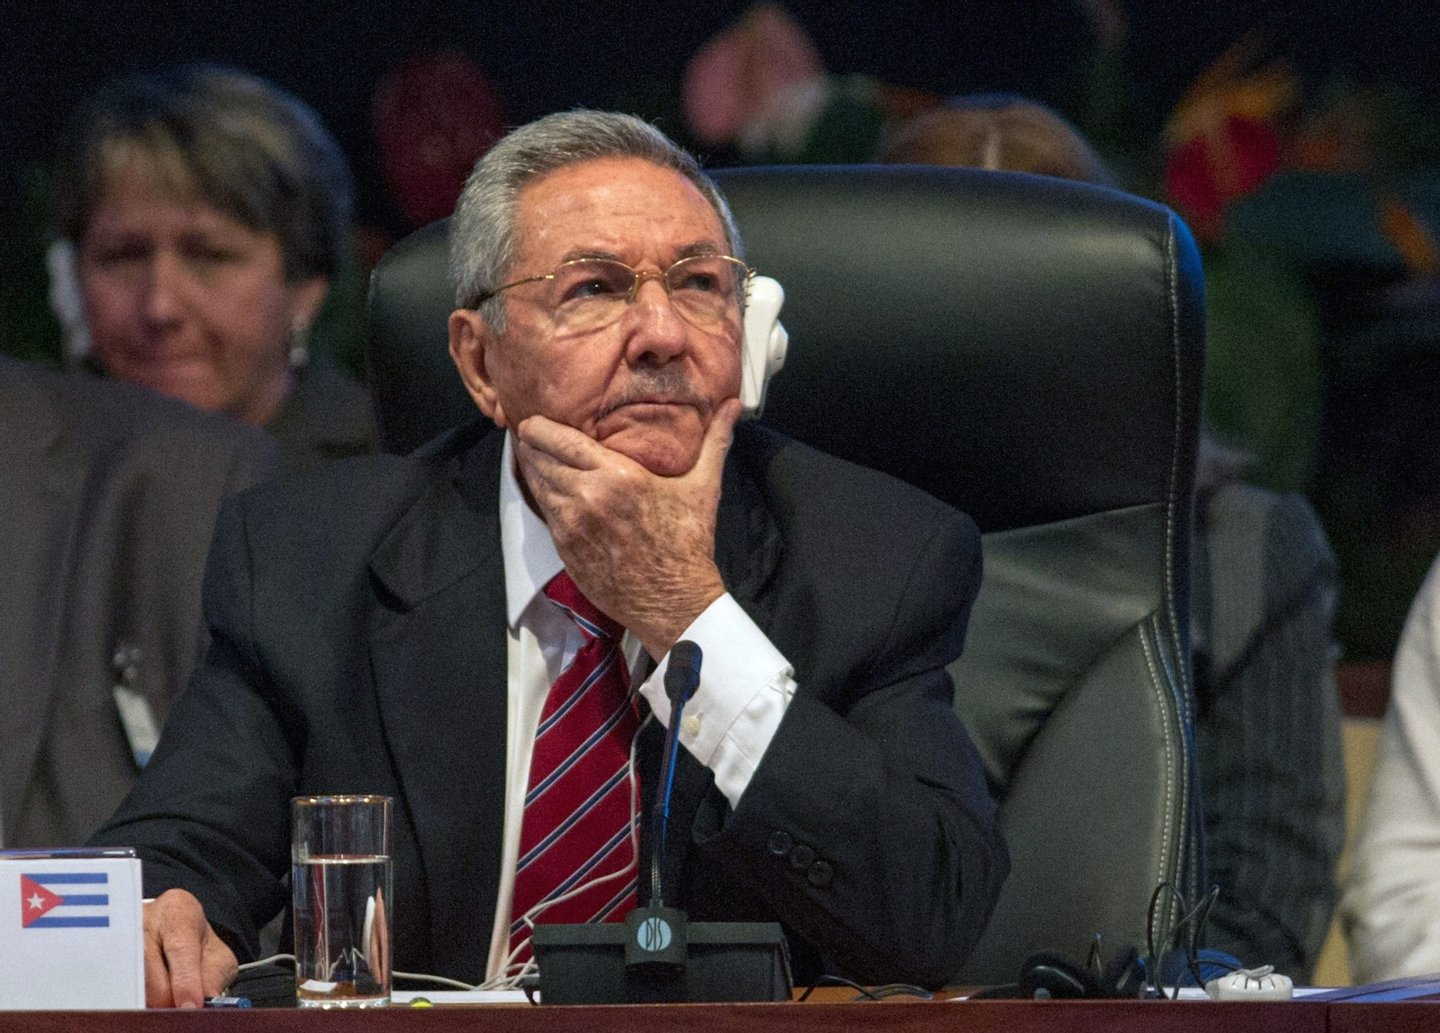 Cuban President Raul Castro listens during the opening of the Caribbean Community (CARICOM) Summit, in Havana, on December 8, 2014. The summit -- bringing together the 15 CARICOM member states and Cuba -- aims to increase trade and cooperation within the group and with Cuba. AFP PHOTO / YAMIL LAGE (Photo credit should read YAMIL LAGE/AFP/Getty Images)